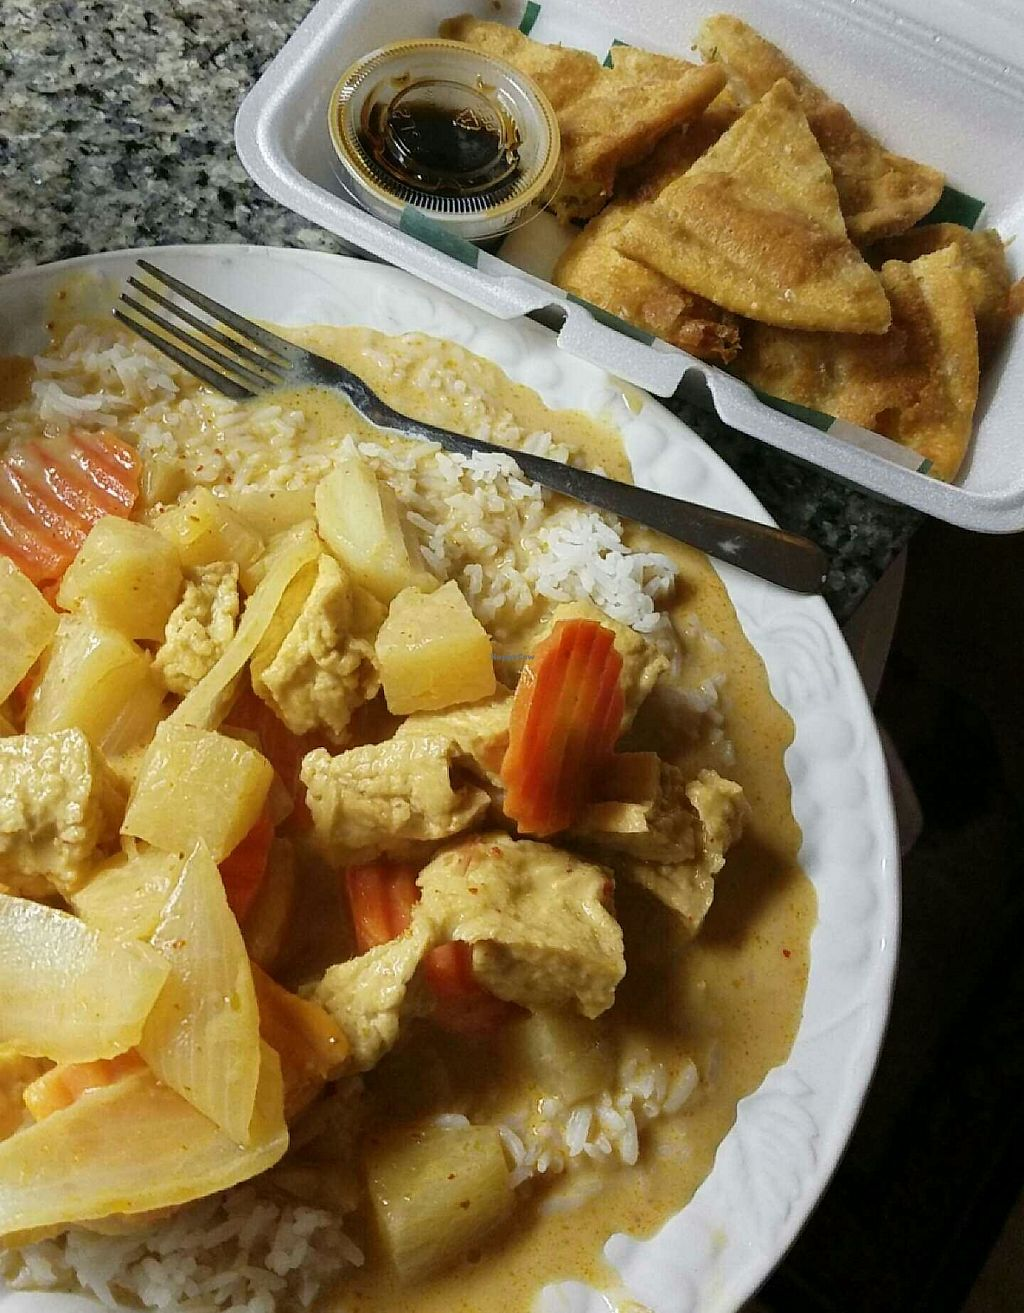 """Photo of Roselyn Thai Fine Cuisine   by <a href=""""/members/profile/Mchanner11"""">Mchanner11</a> <br/>Yellow curry with tofu and scallion pancakes! <br/> May 14, 2016  - <a href='/contact/abuse/image/73704/201512'>Report</a>"""